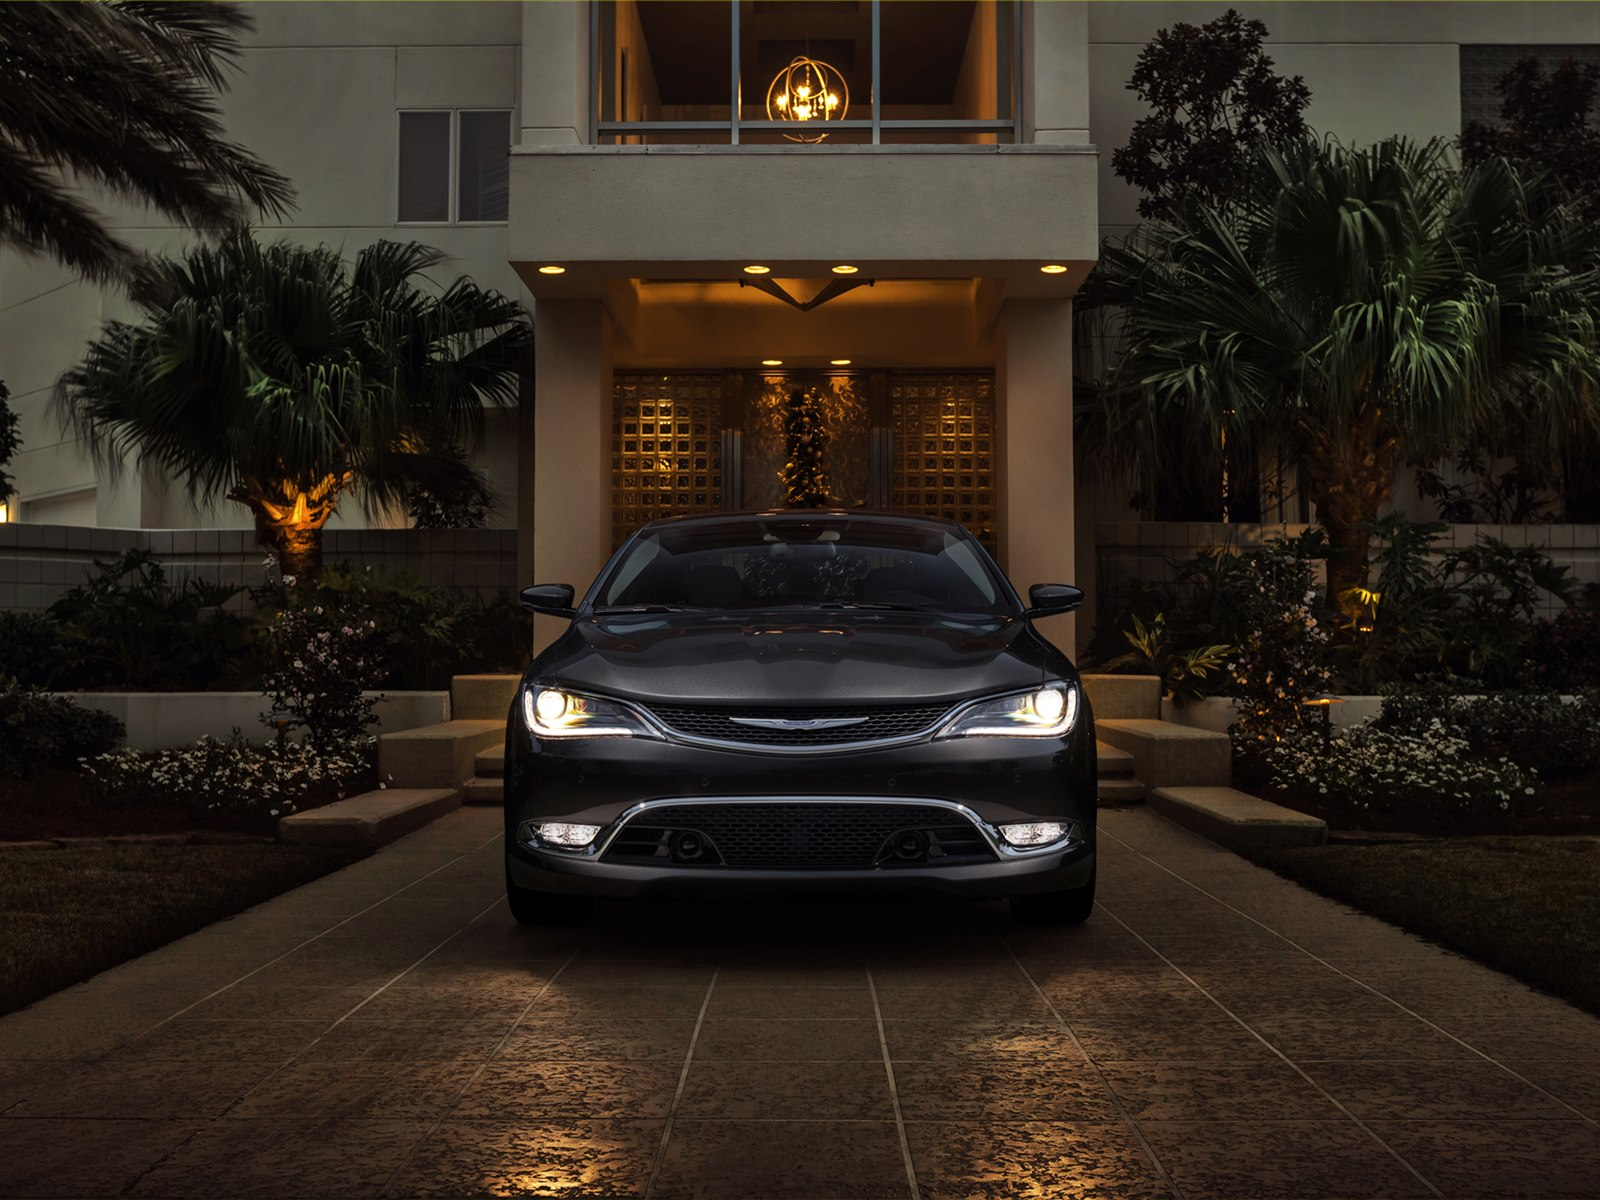 2015 Chrysler 200 Front End (Photo 6 of 11)